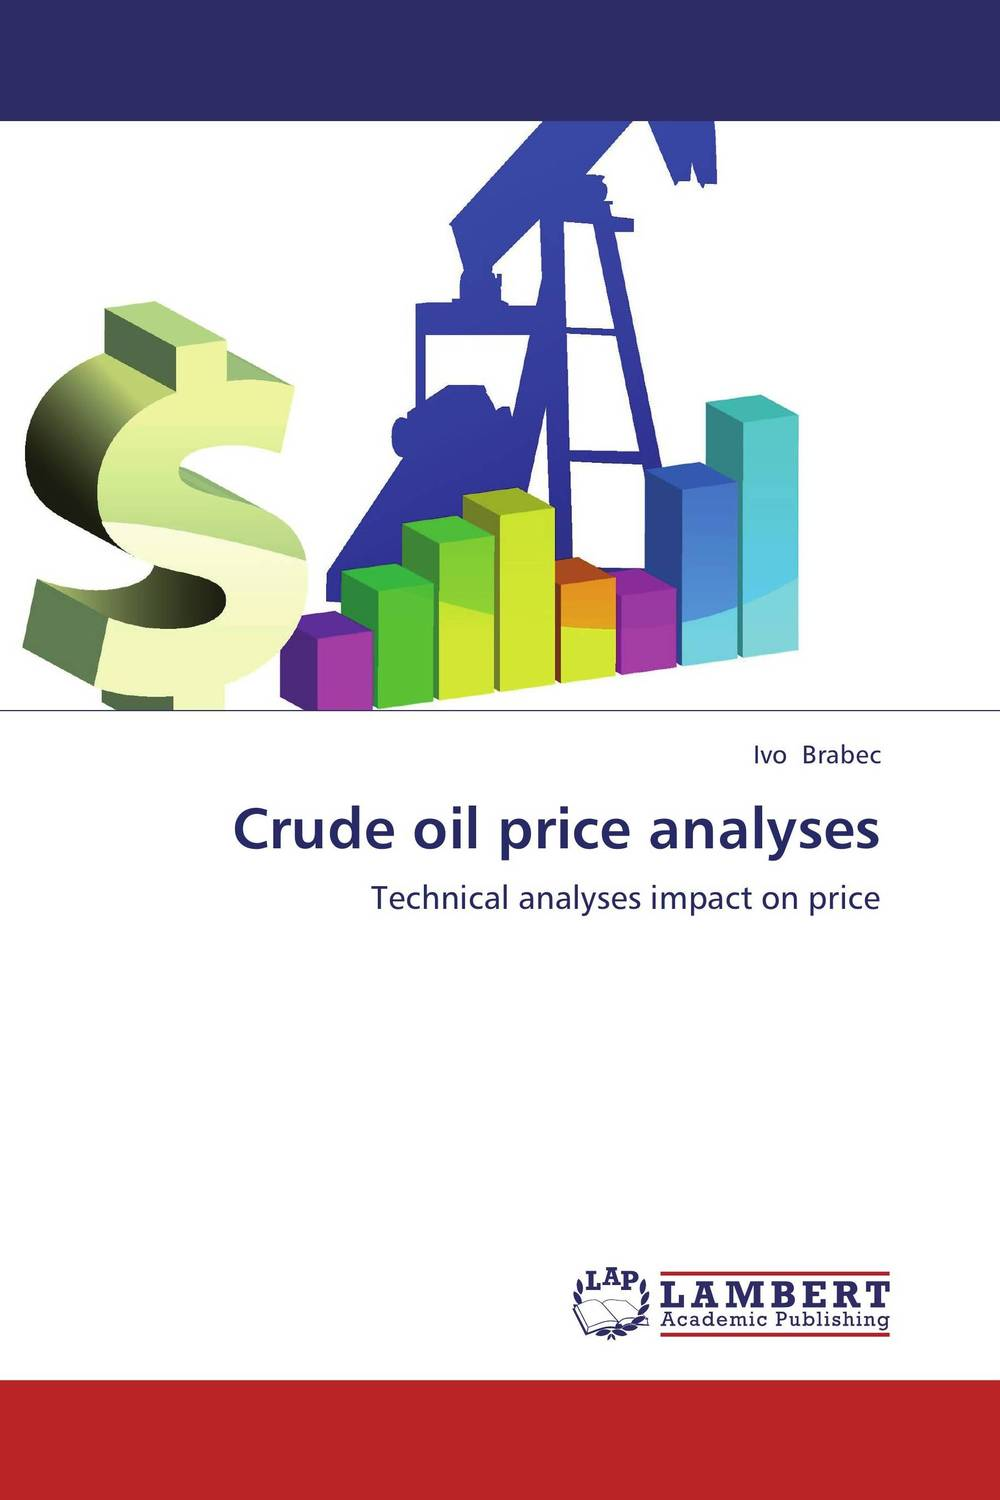 Crude oil price analyses dearomatization of crude oil